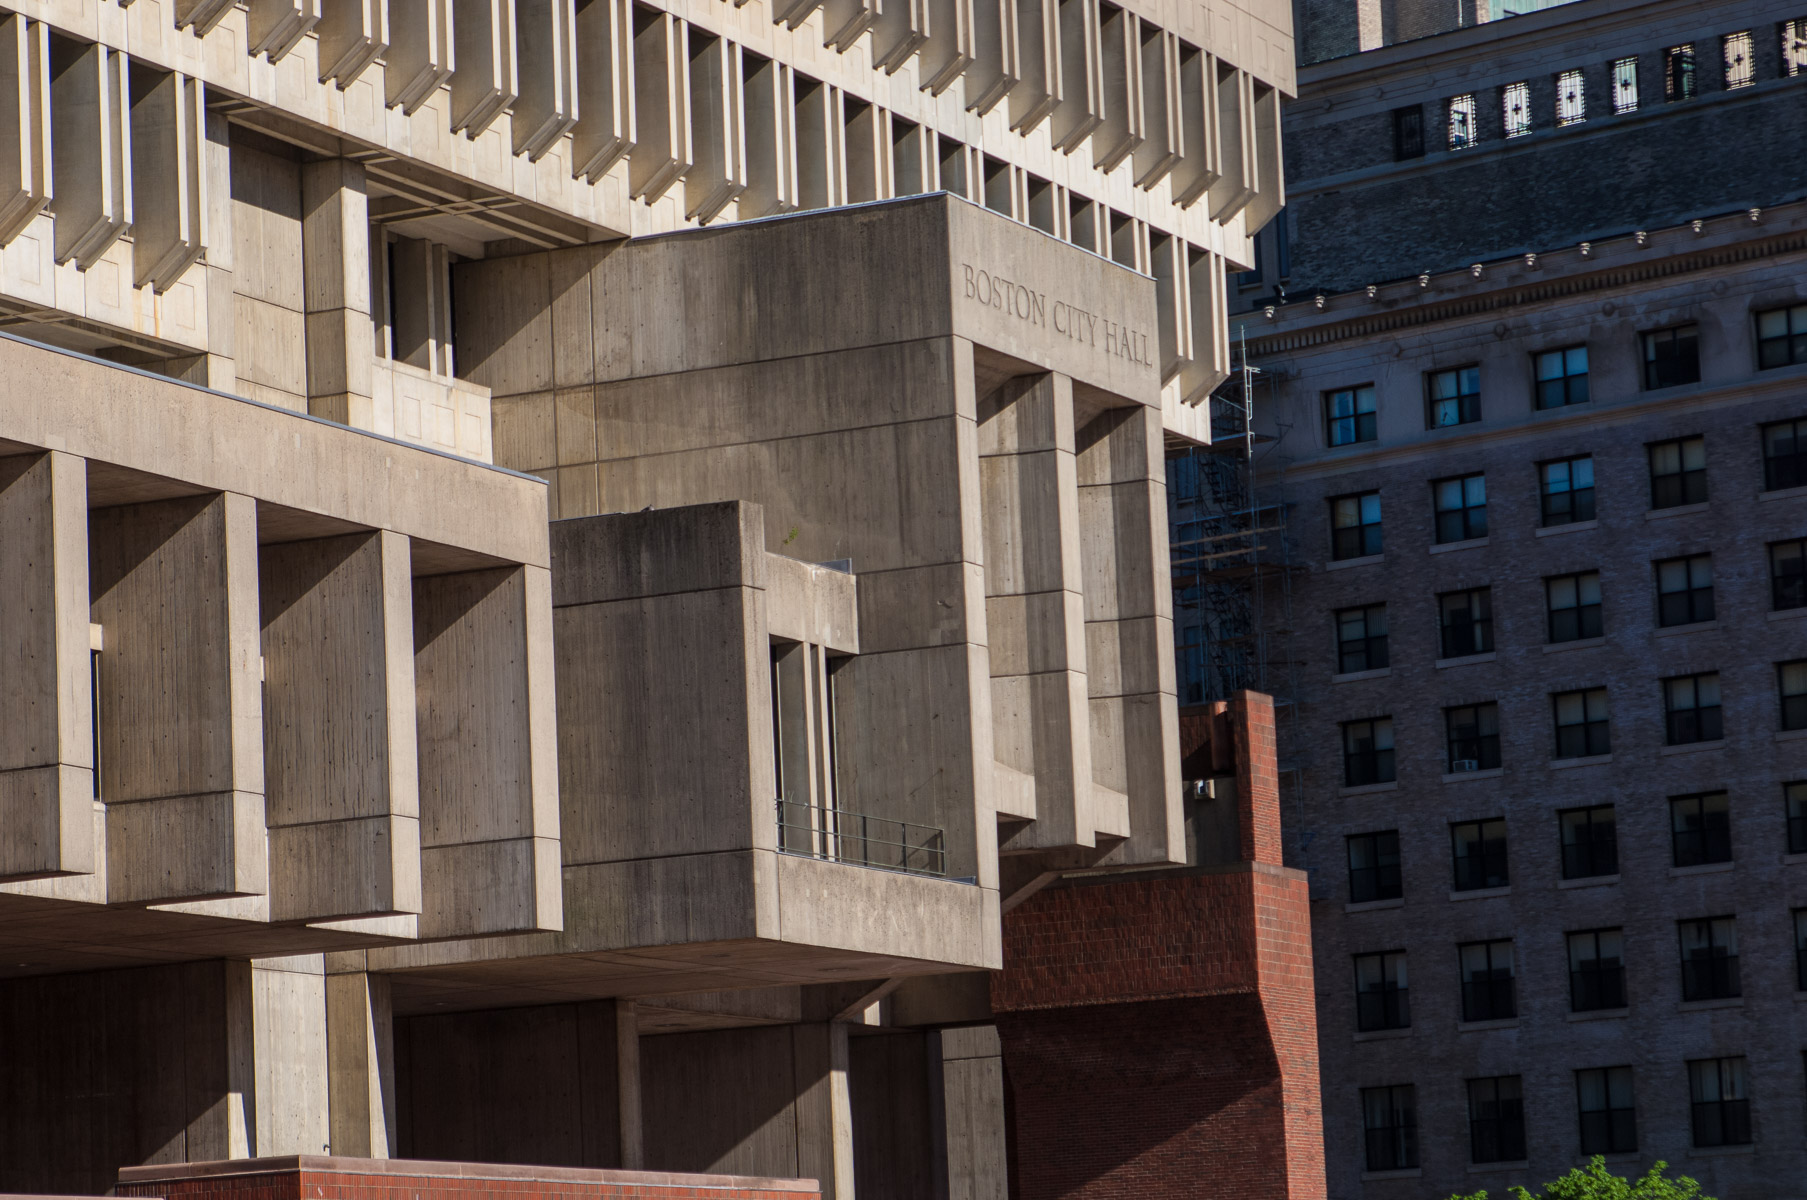 Boston,City Hall